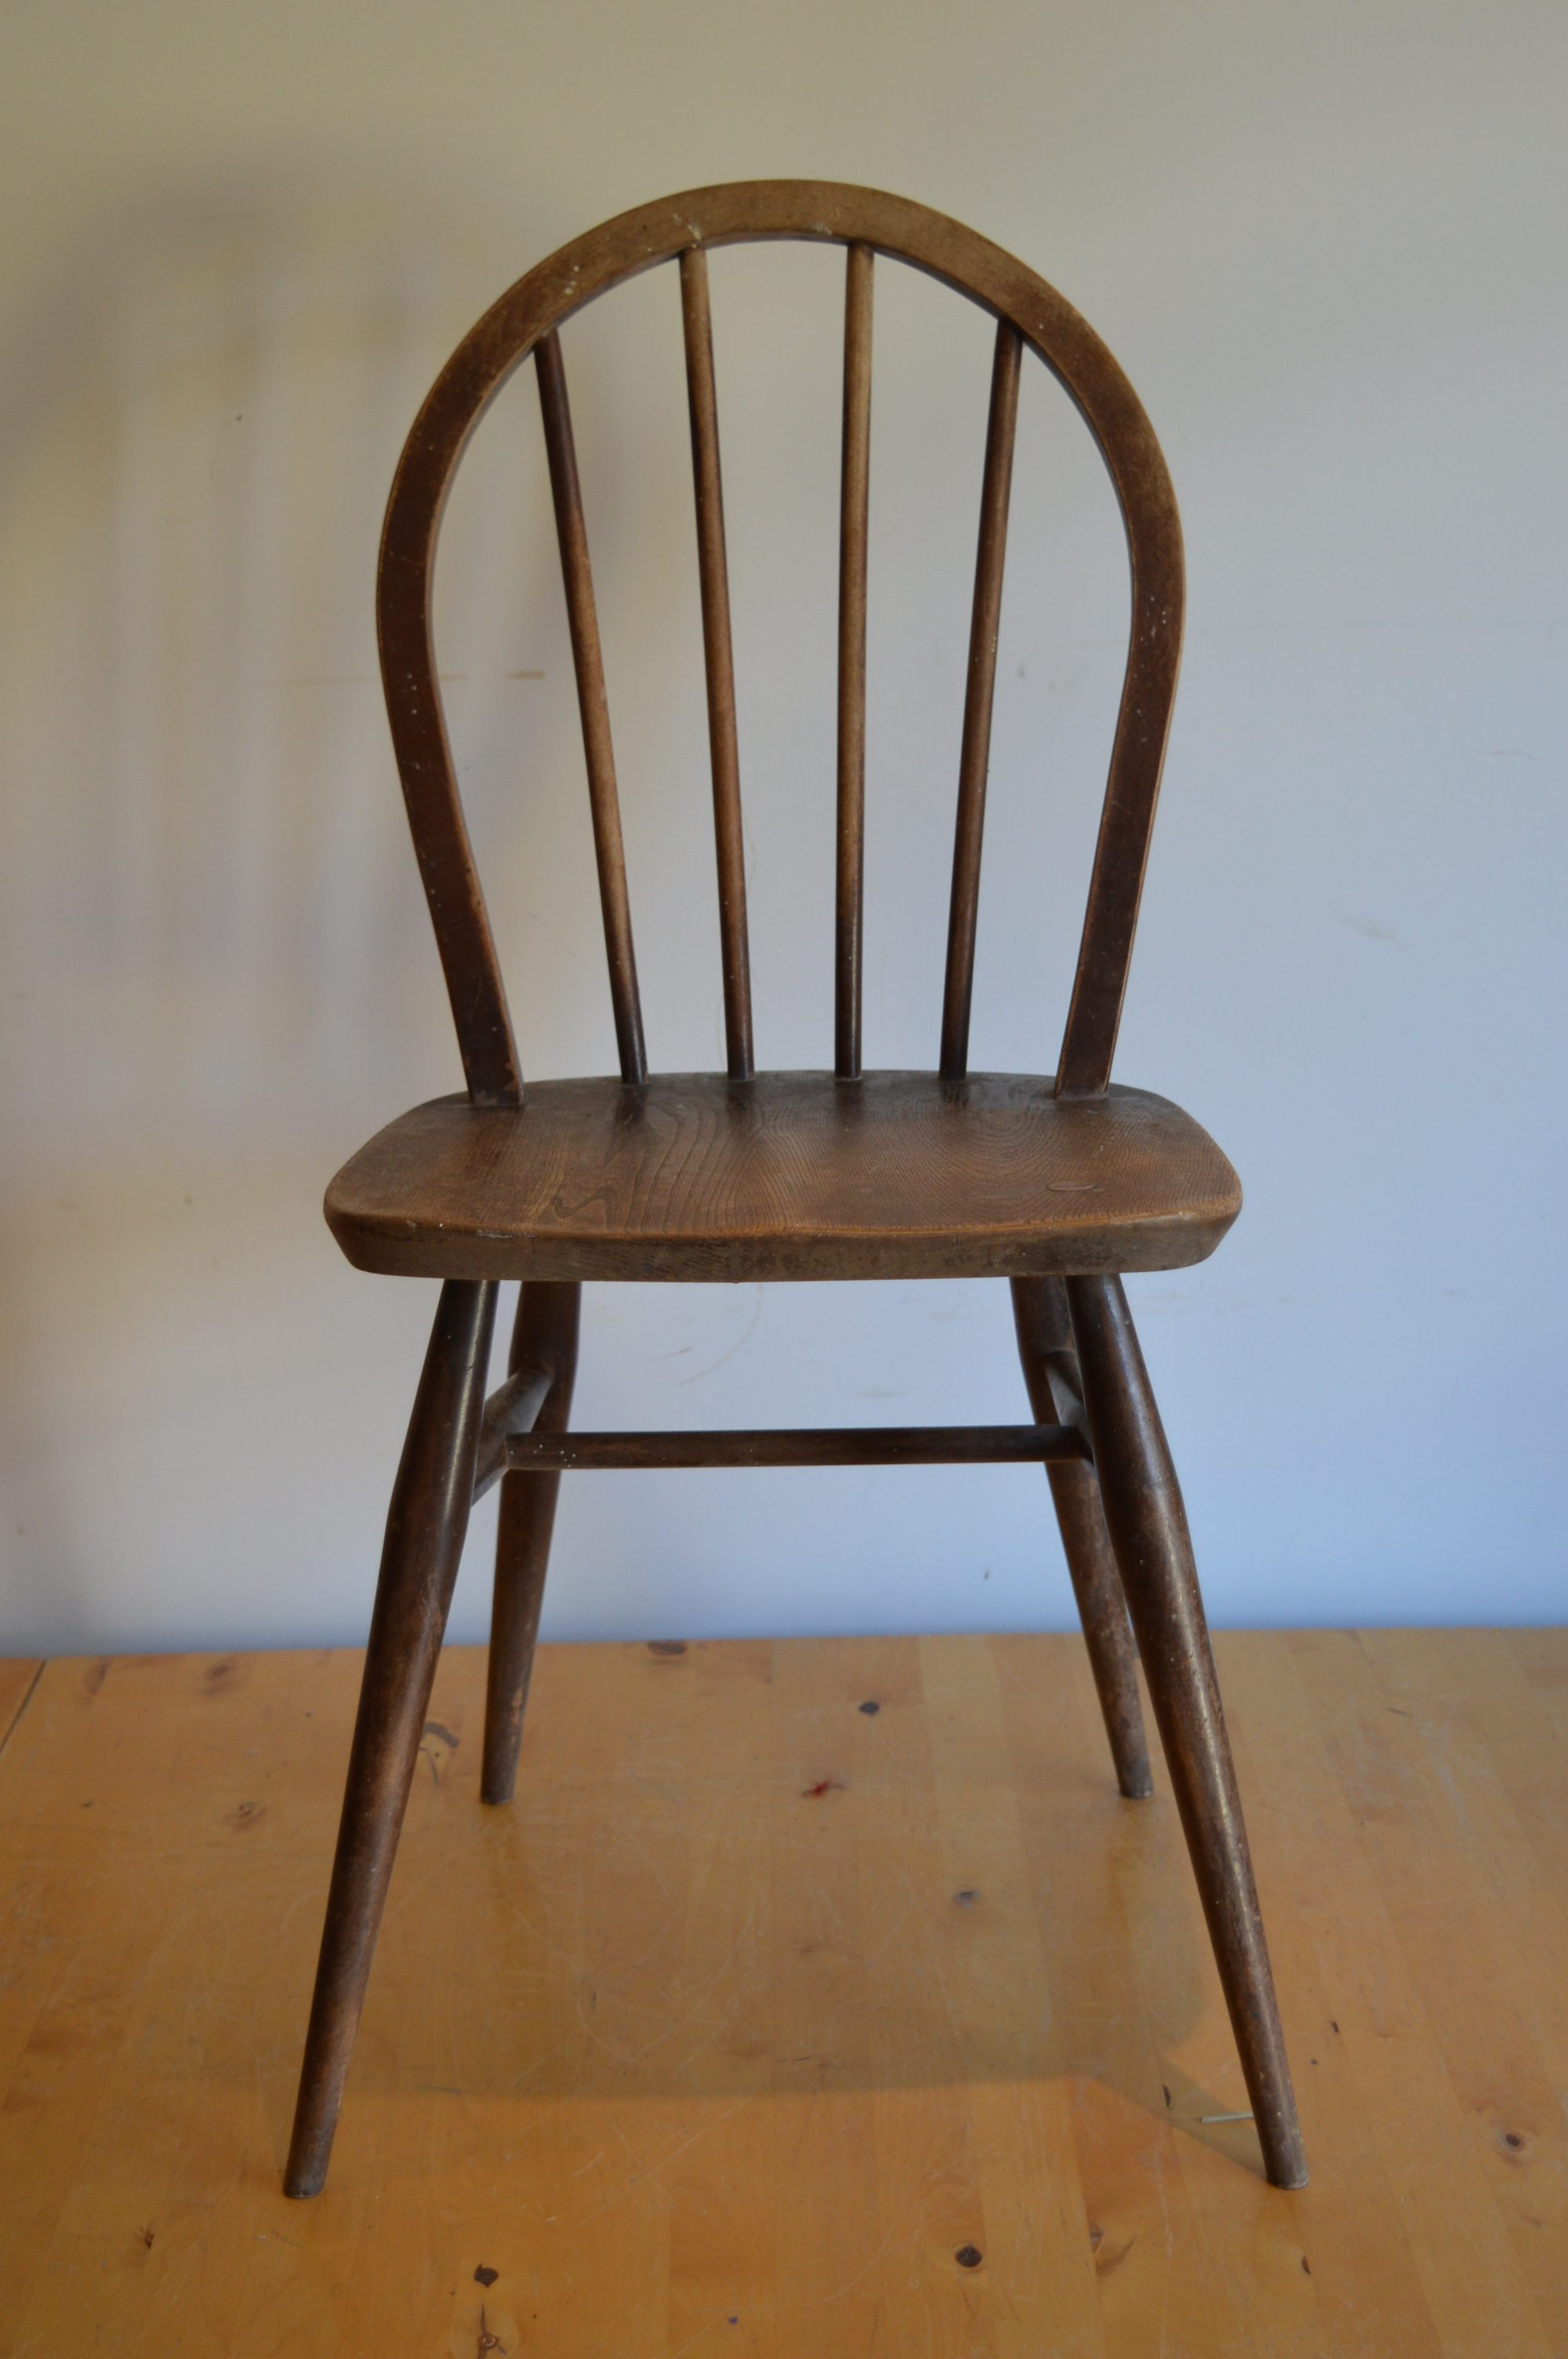 Windsor Chairs A Guide and History